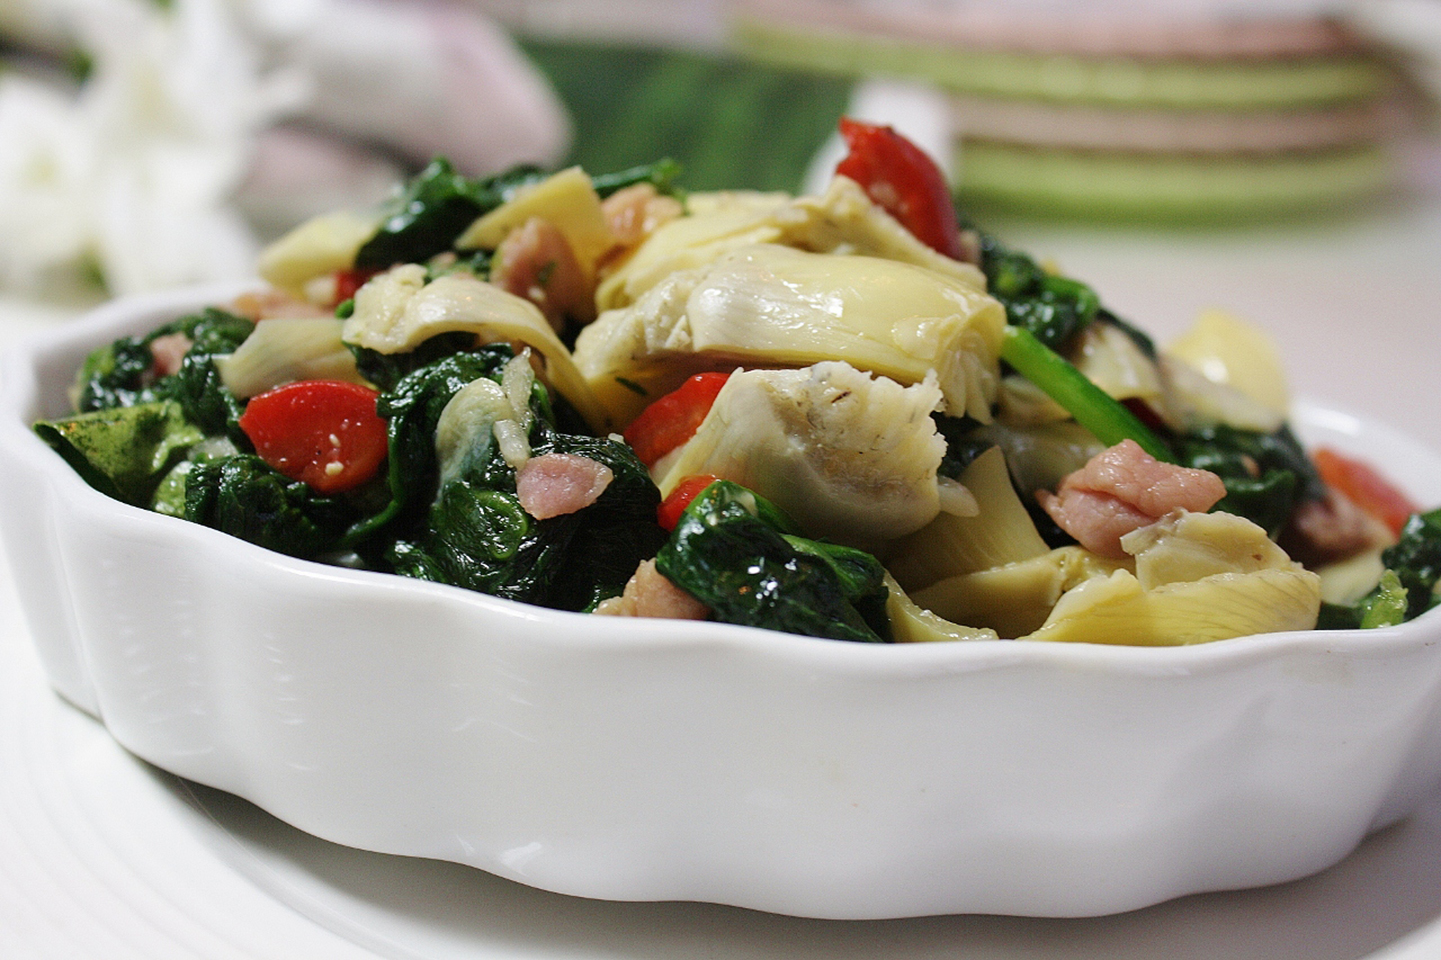 Colorful Spinach and Prosciutto Side image